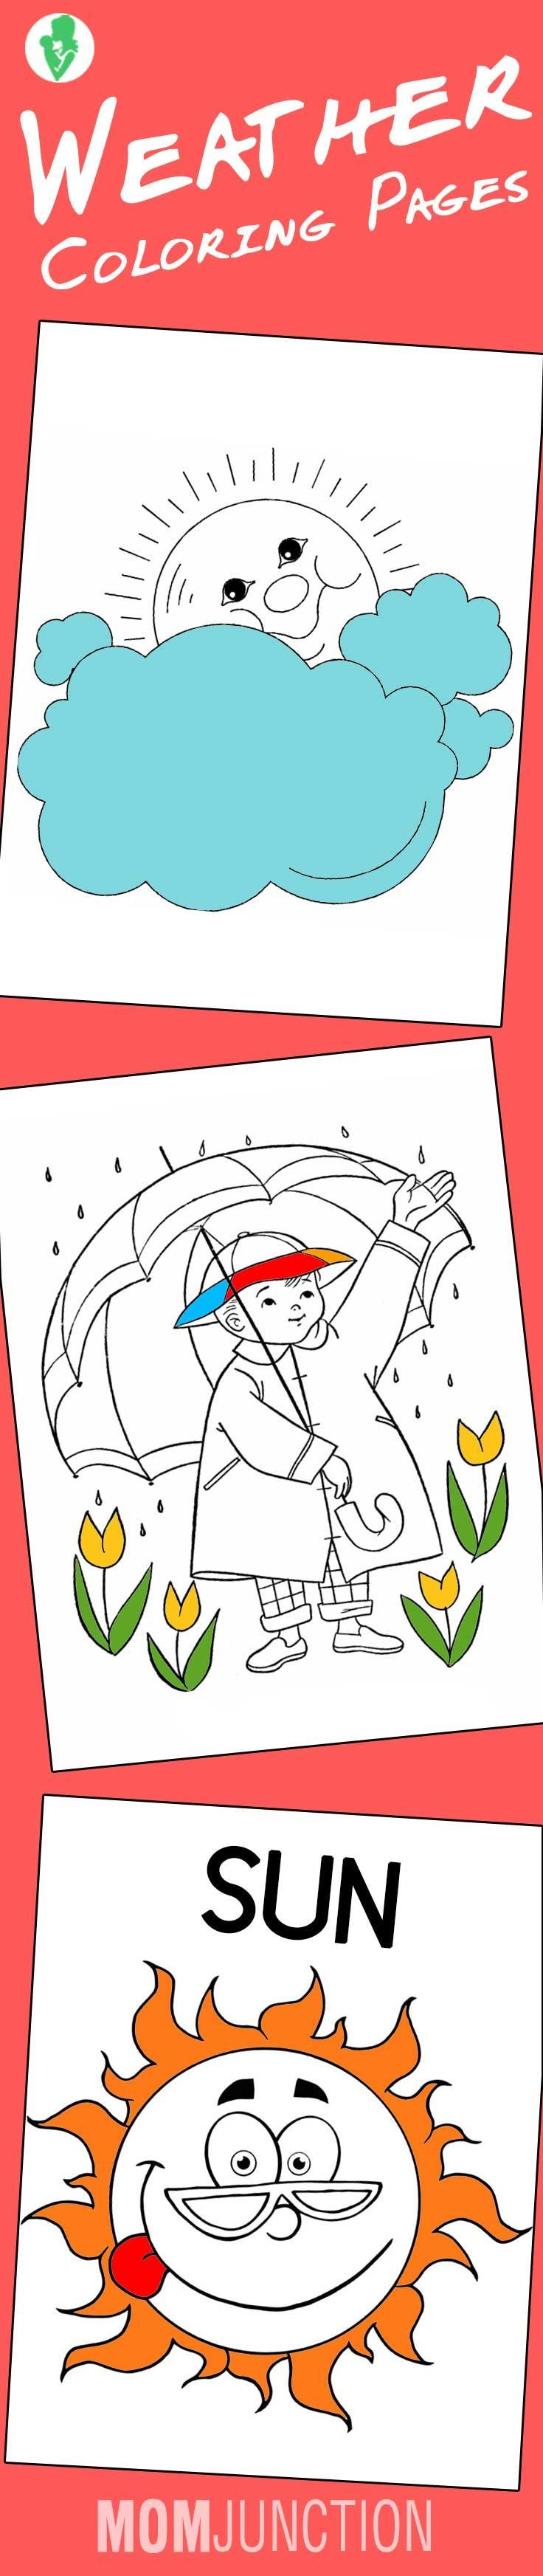 Top 10 free printable weather coloring pages online a for Weather coloring pages printable